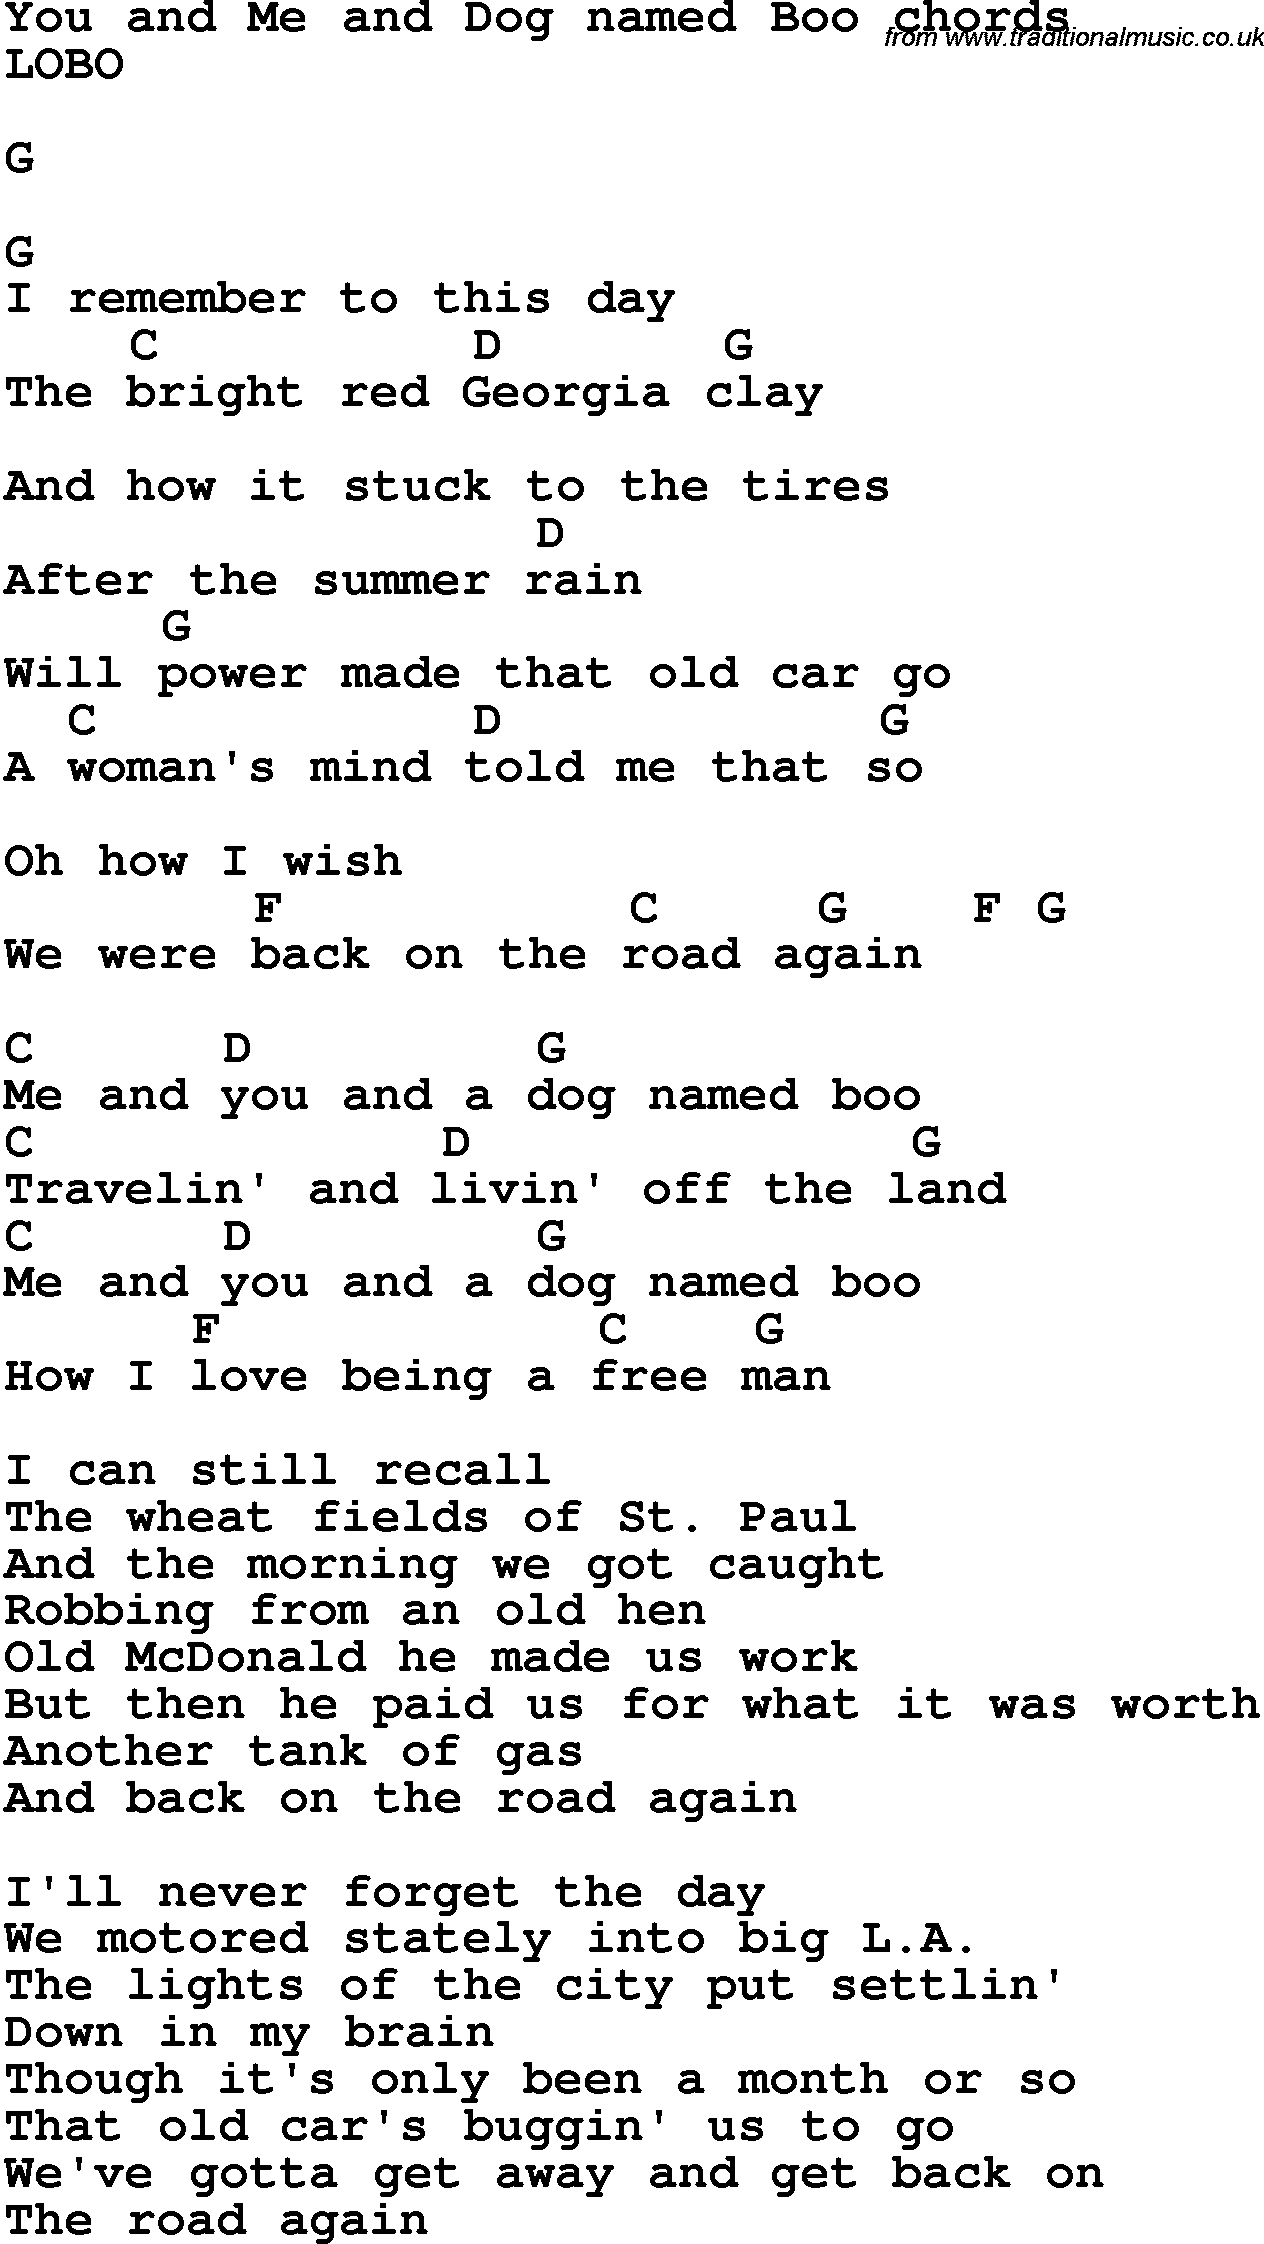 Song lyrics with guitar chords for you and me and dog named boo song lyrics with guitar chords for you and me and dog named boo hexwebz Images